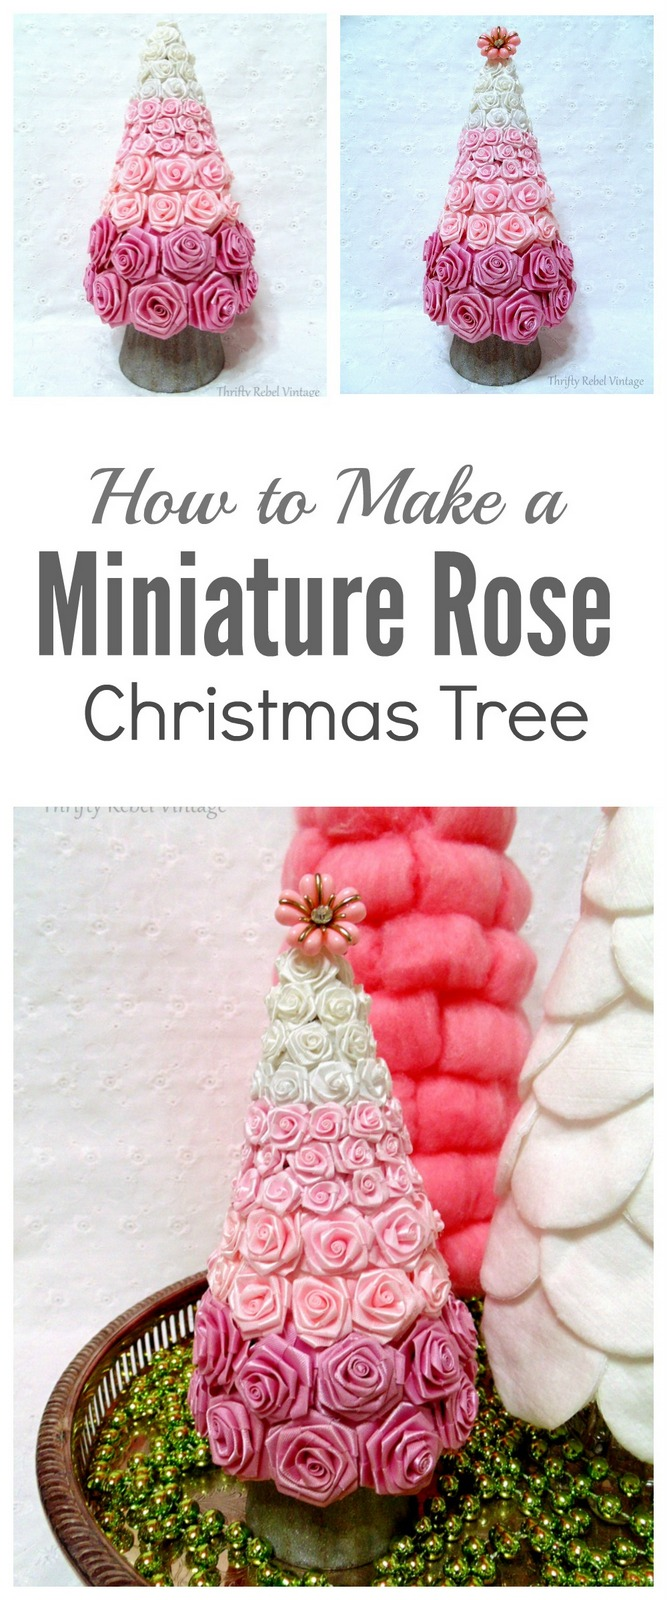 DIY Miniature Rose Christmas Tree